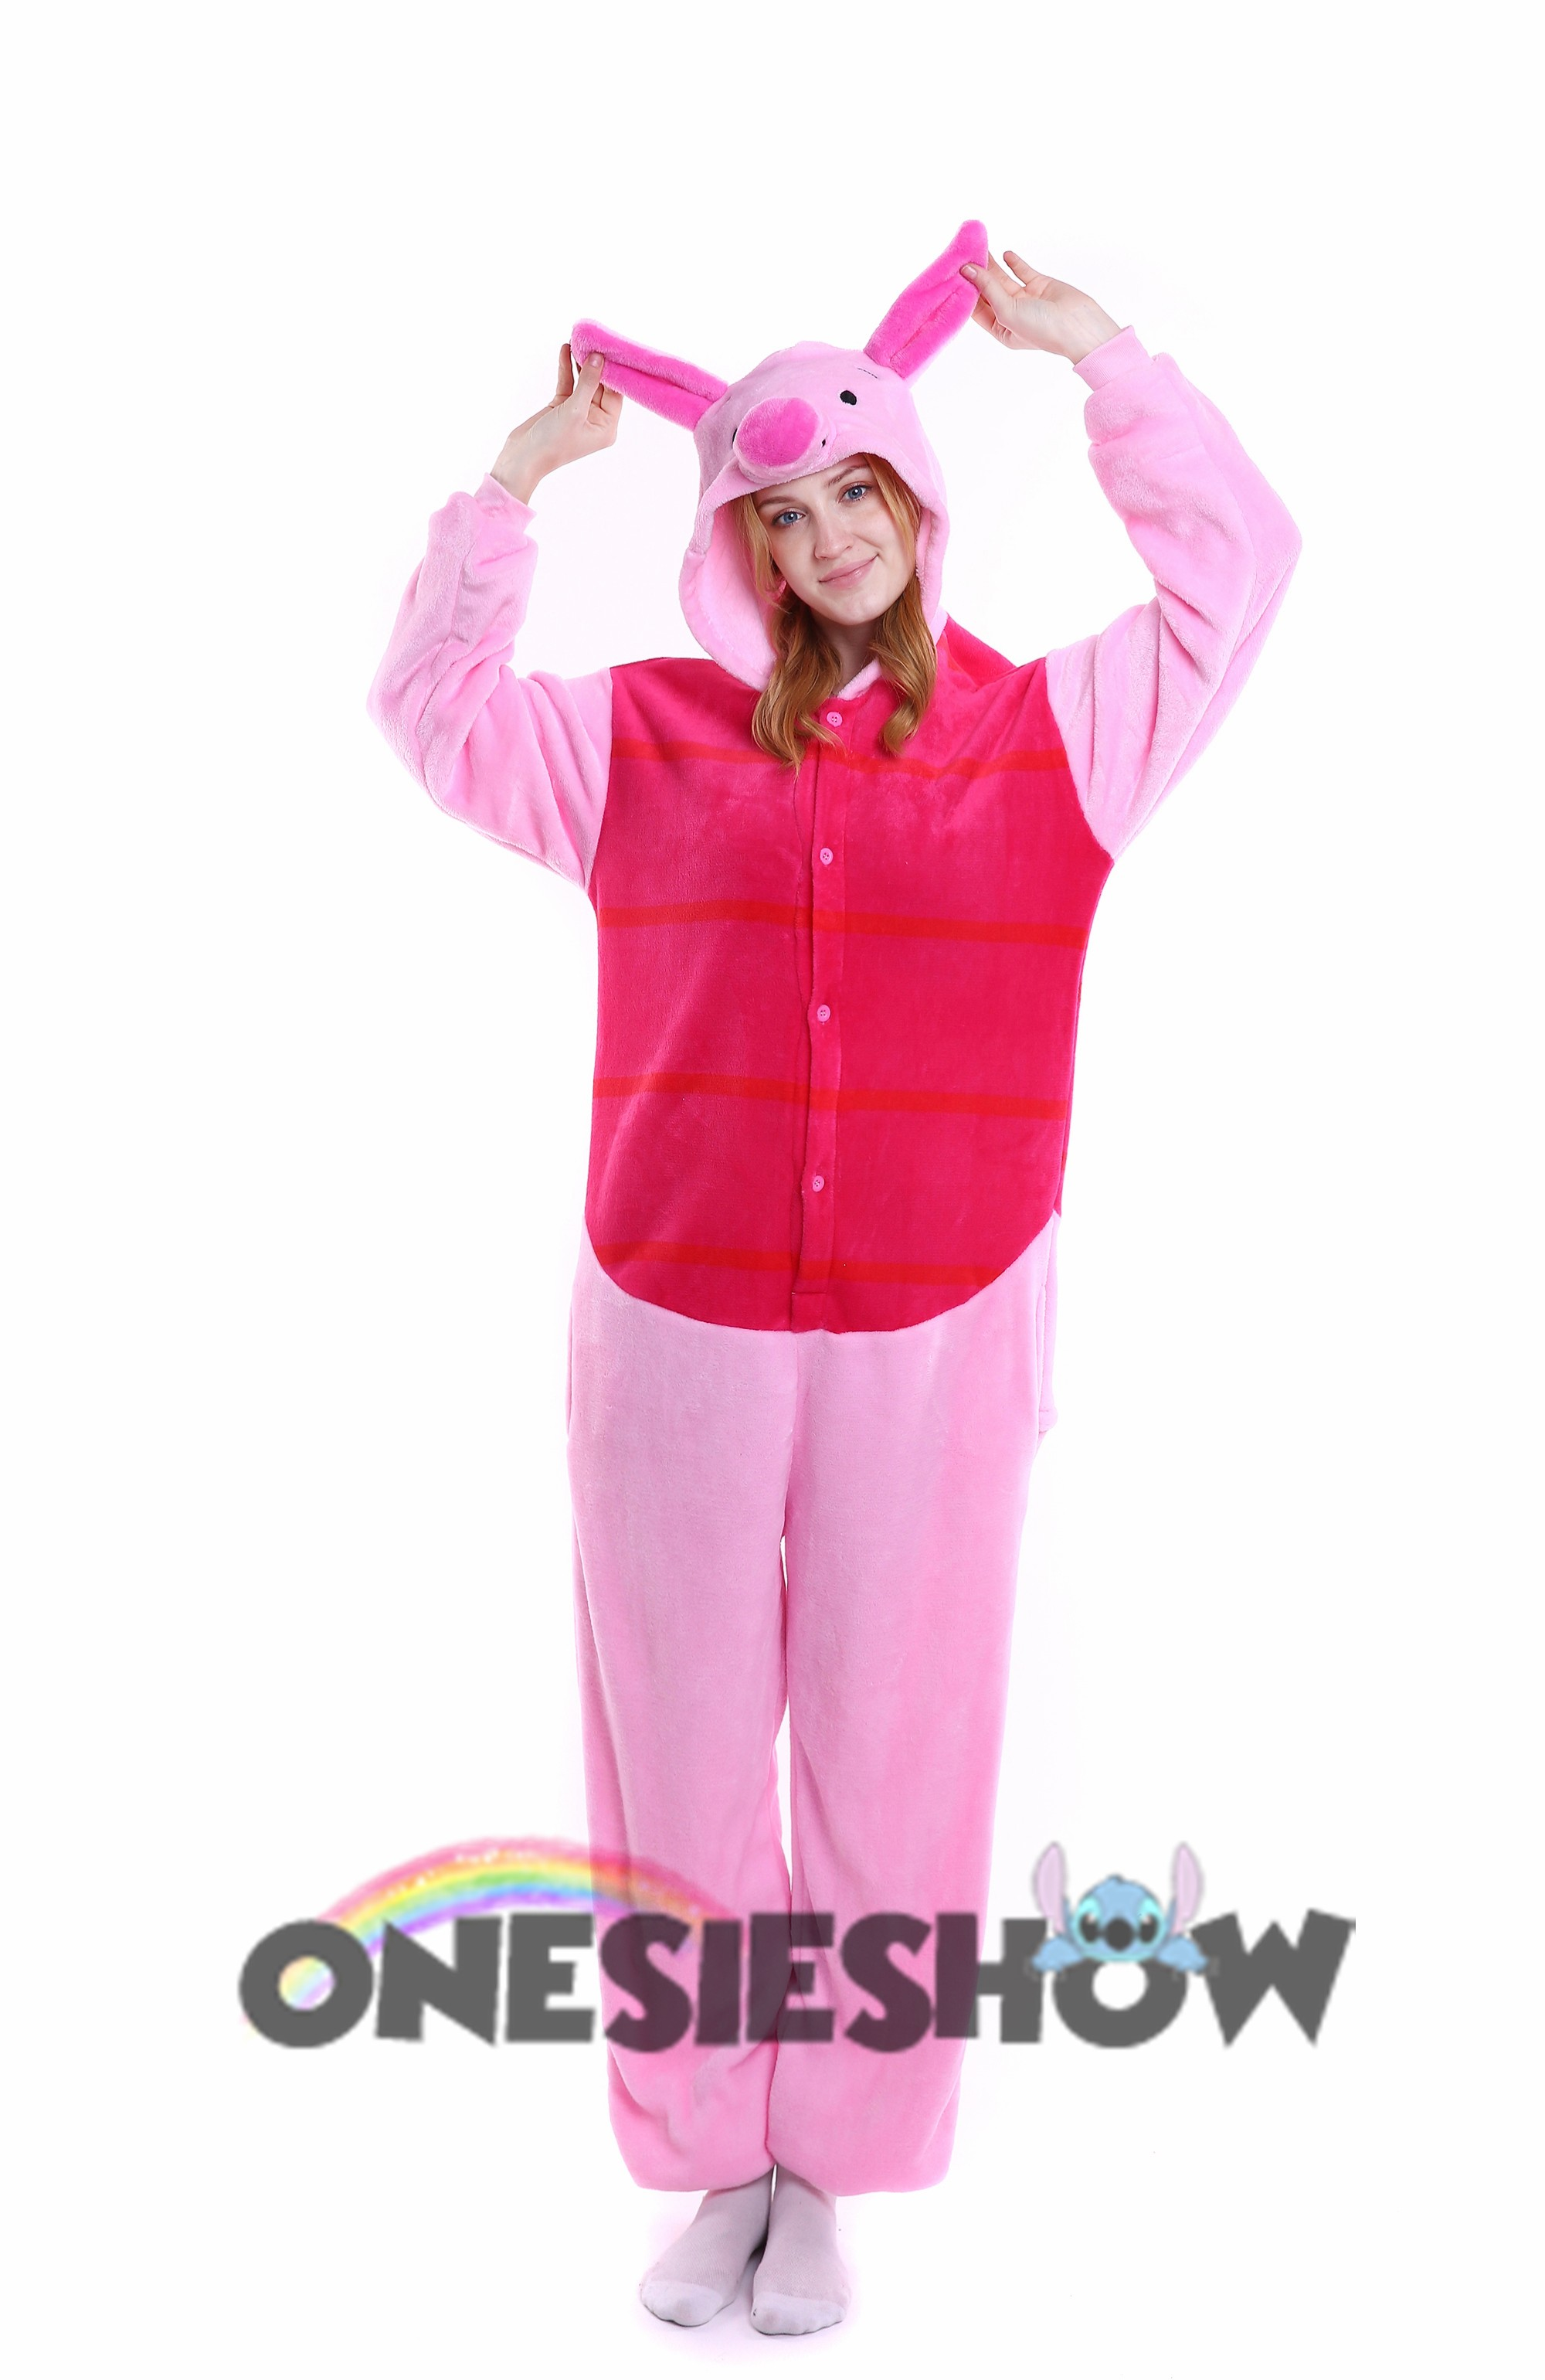 c87ee446f5 Winnie The Pooh Piglet Kigurumi Onesie Pajamas Soft Flannel Unisex Animal  Costumes ... Sc 1 St Onesieshow.com